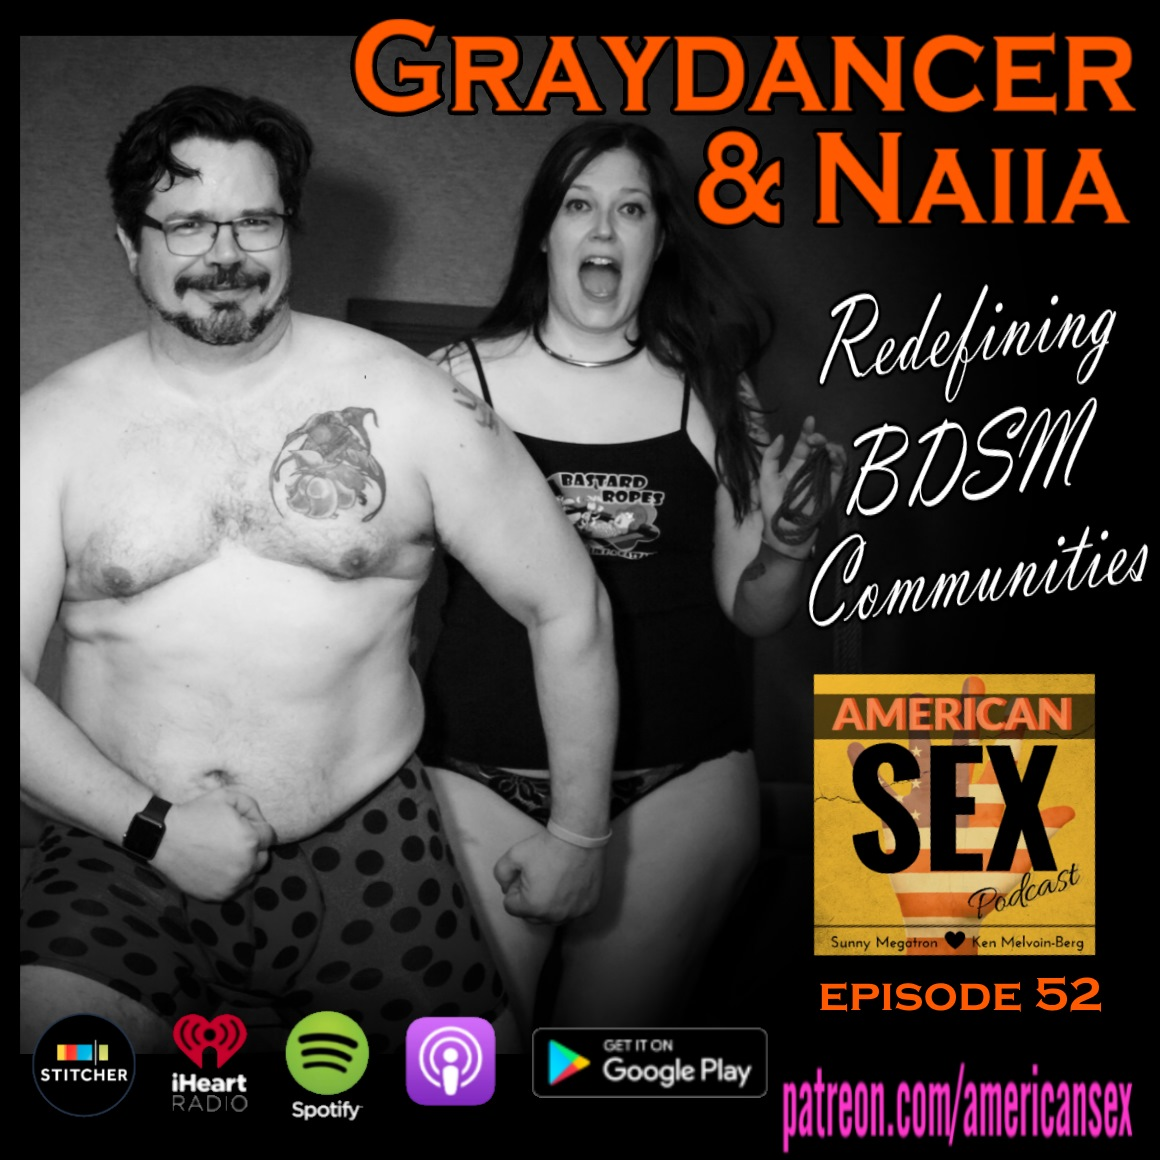 Graydancer & Naiia Podcast Orig photo by Mistress Mayhem